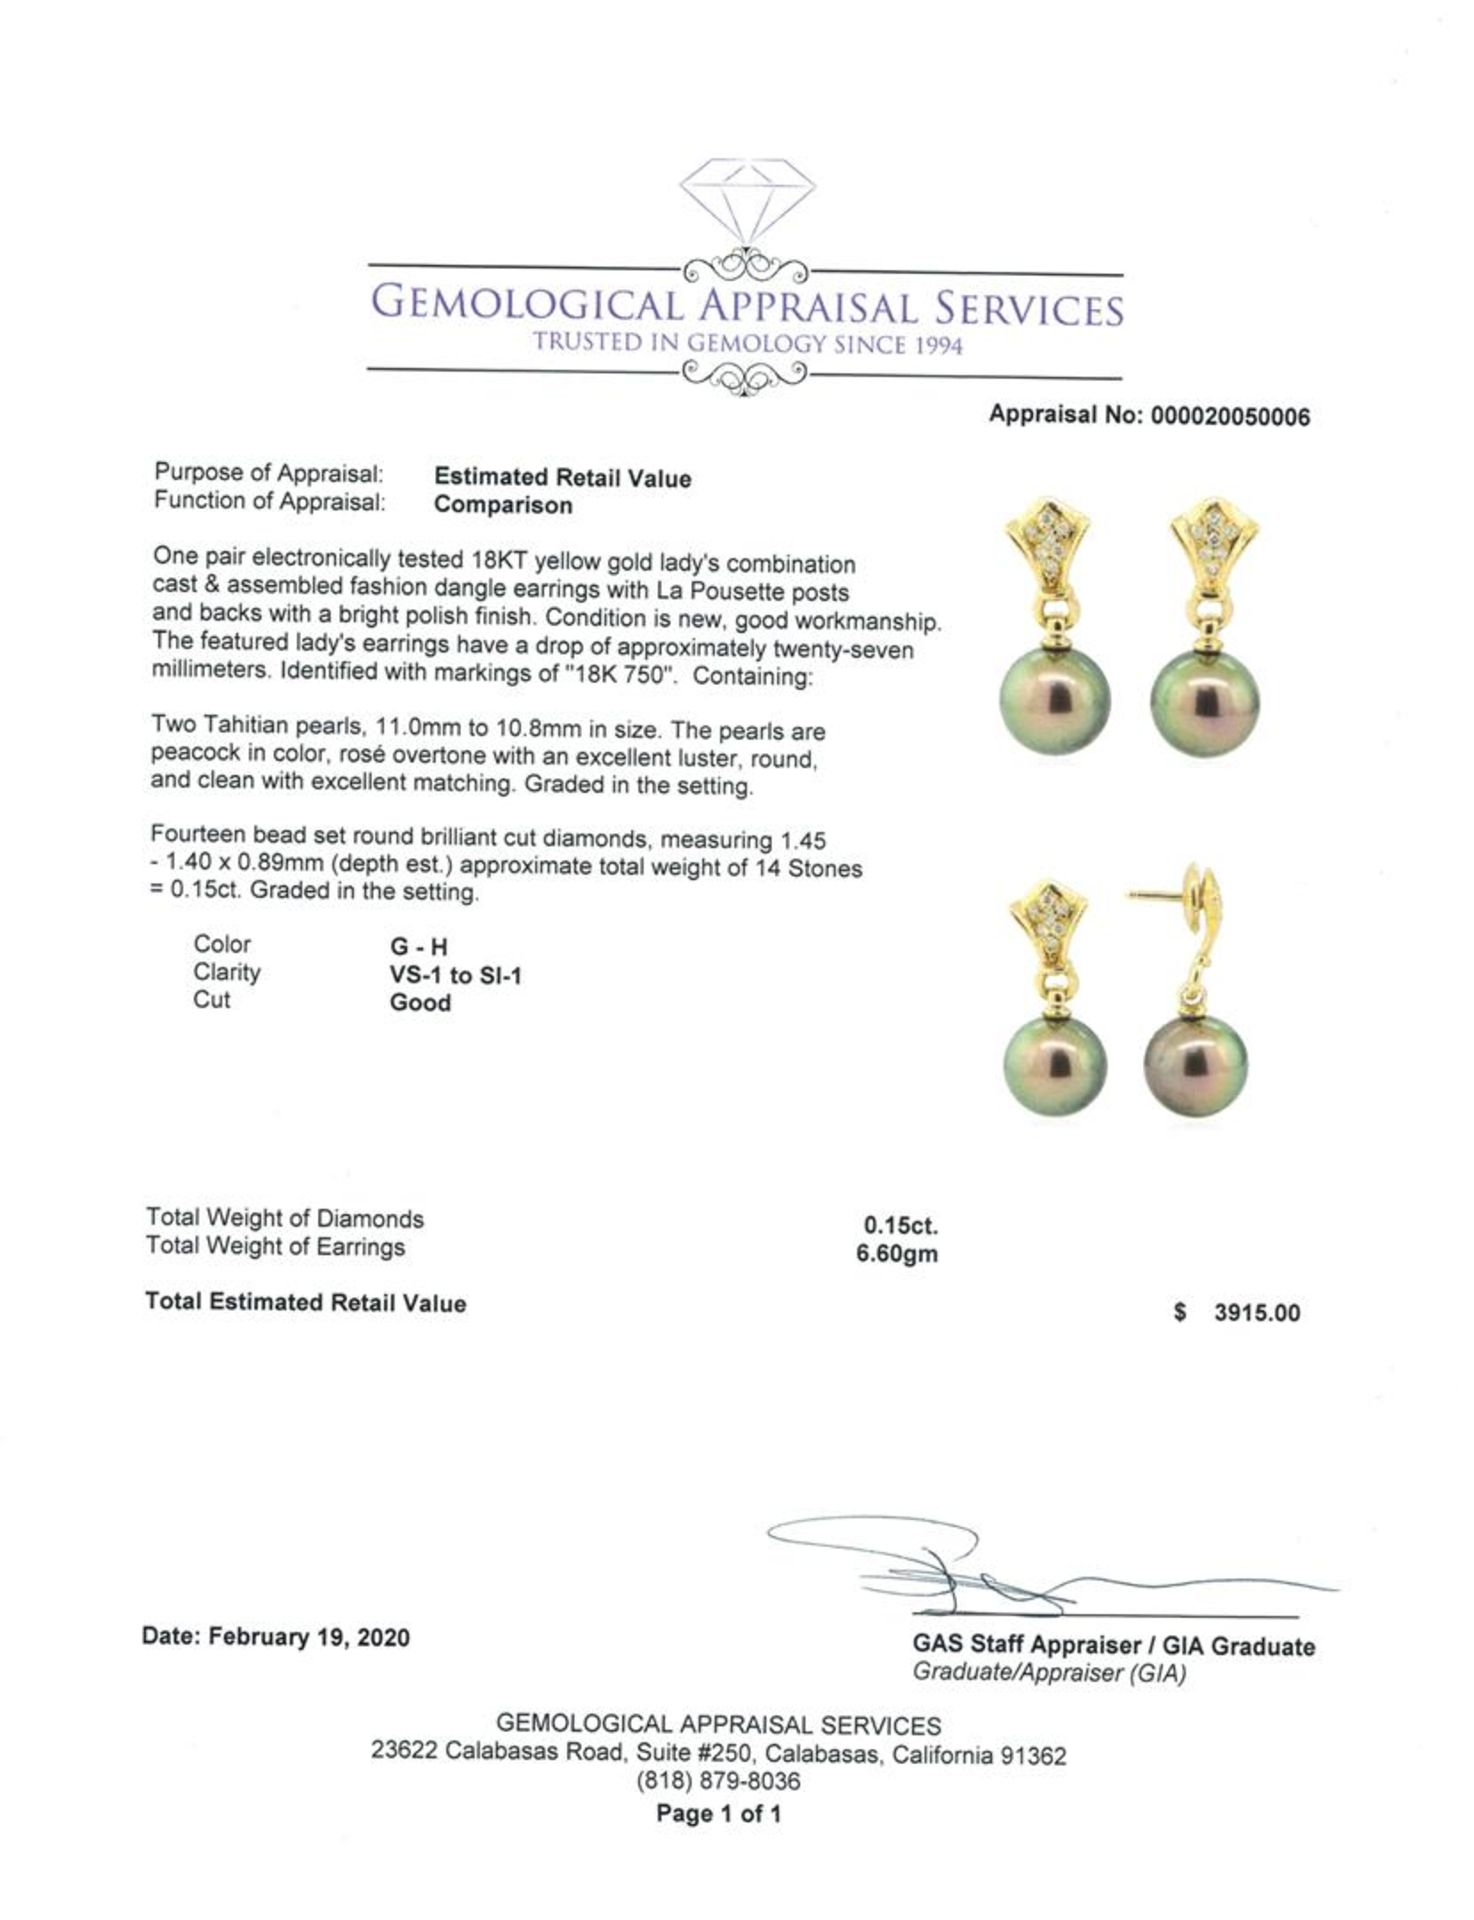 0.15 ctw Diamond and Pearl Earrings - 18KT Yellow Gold - Image 3 of 3